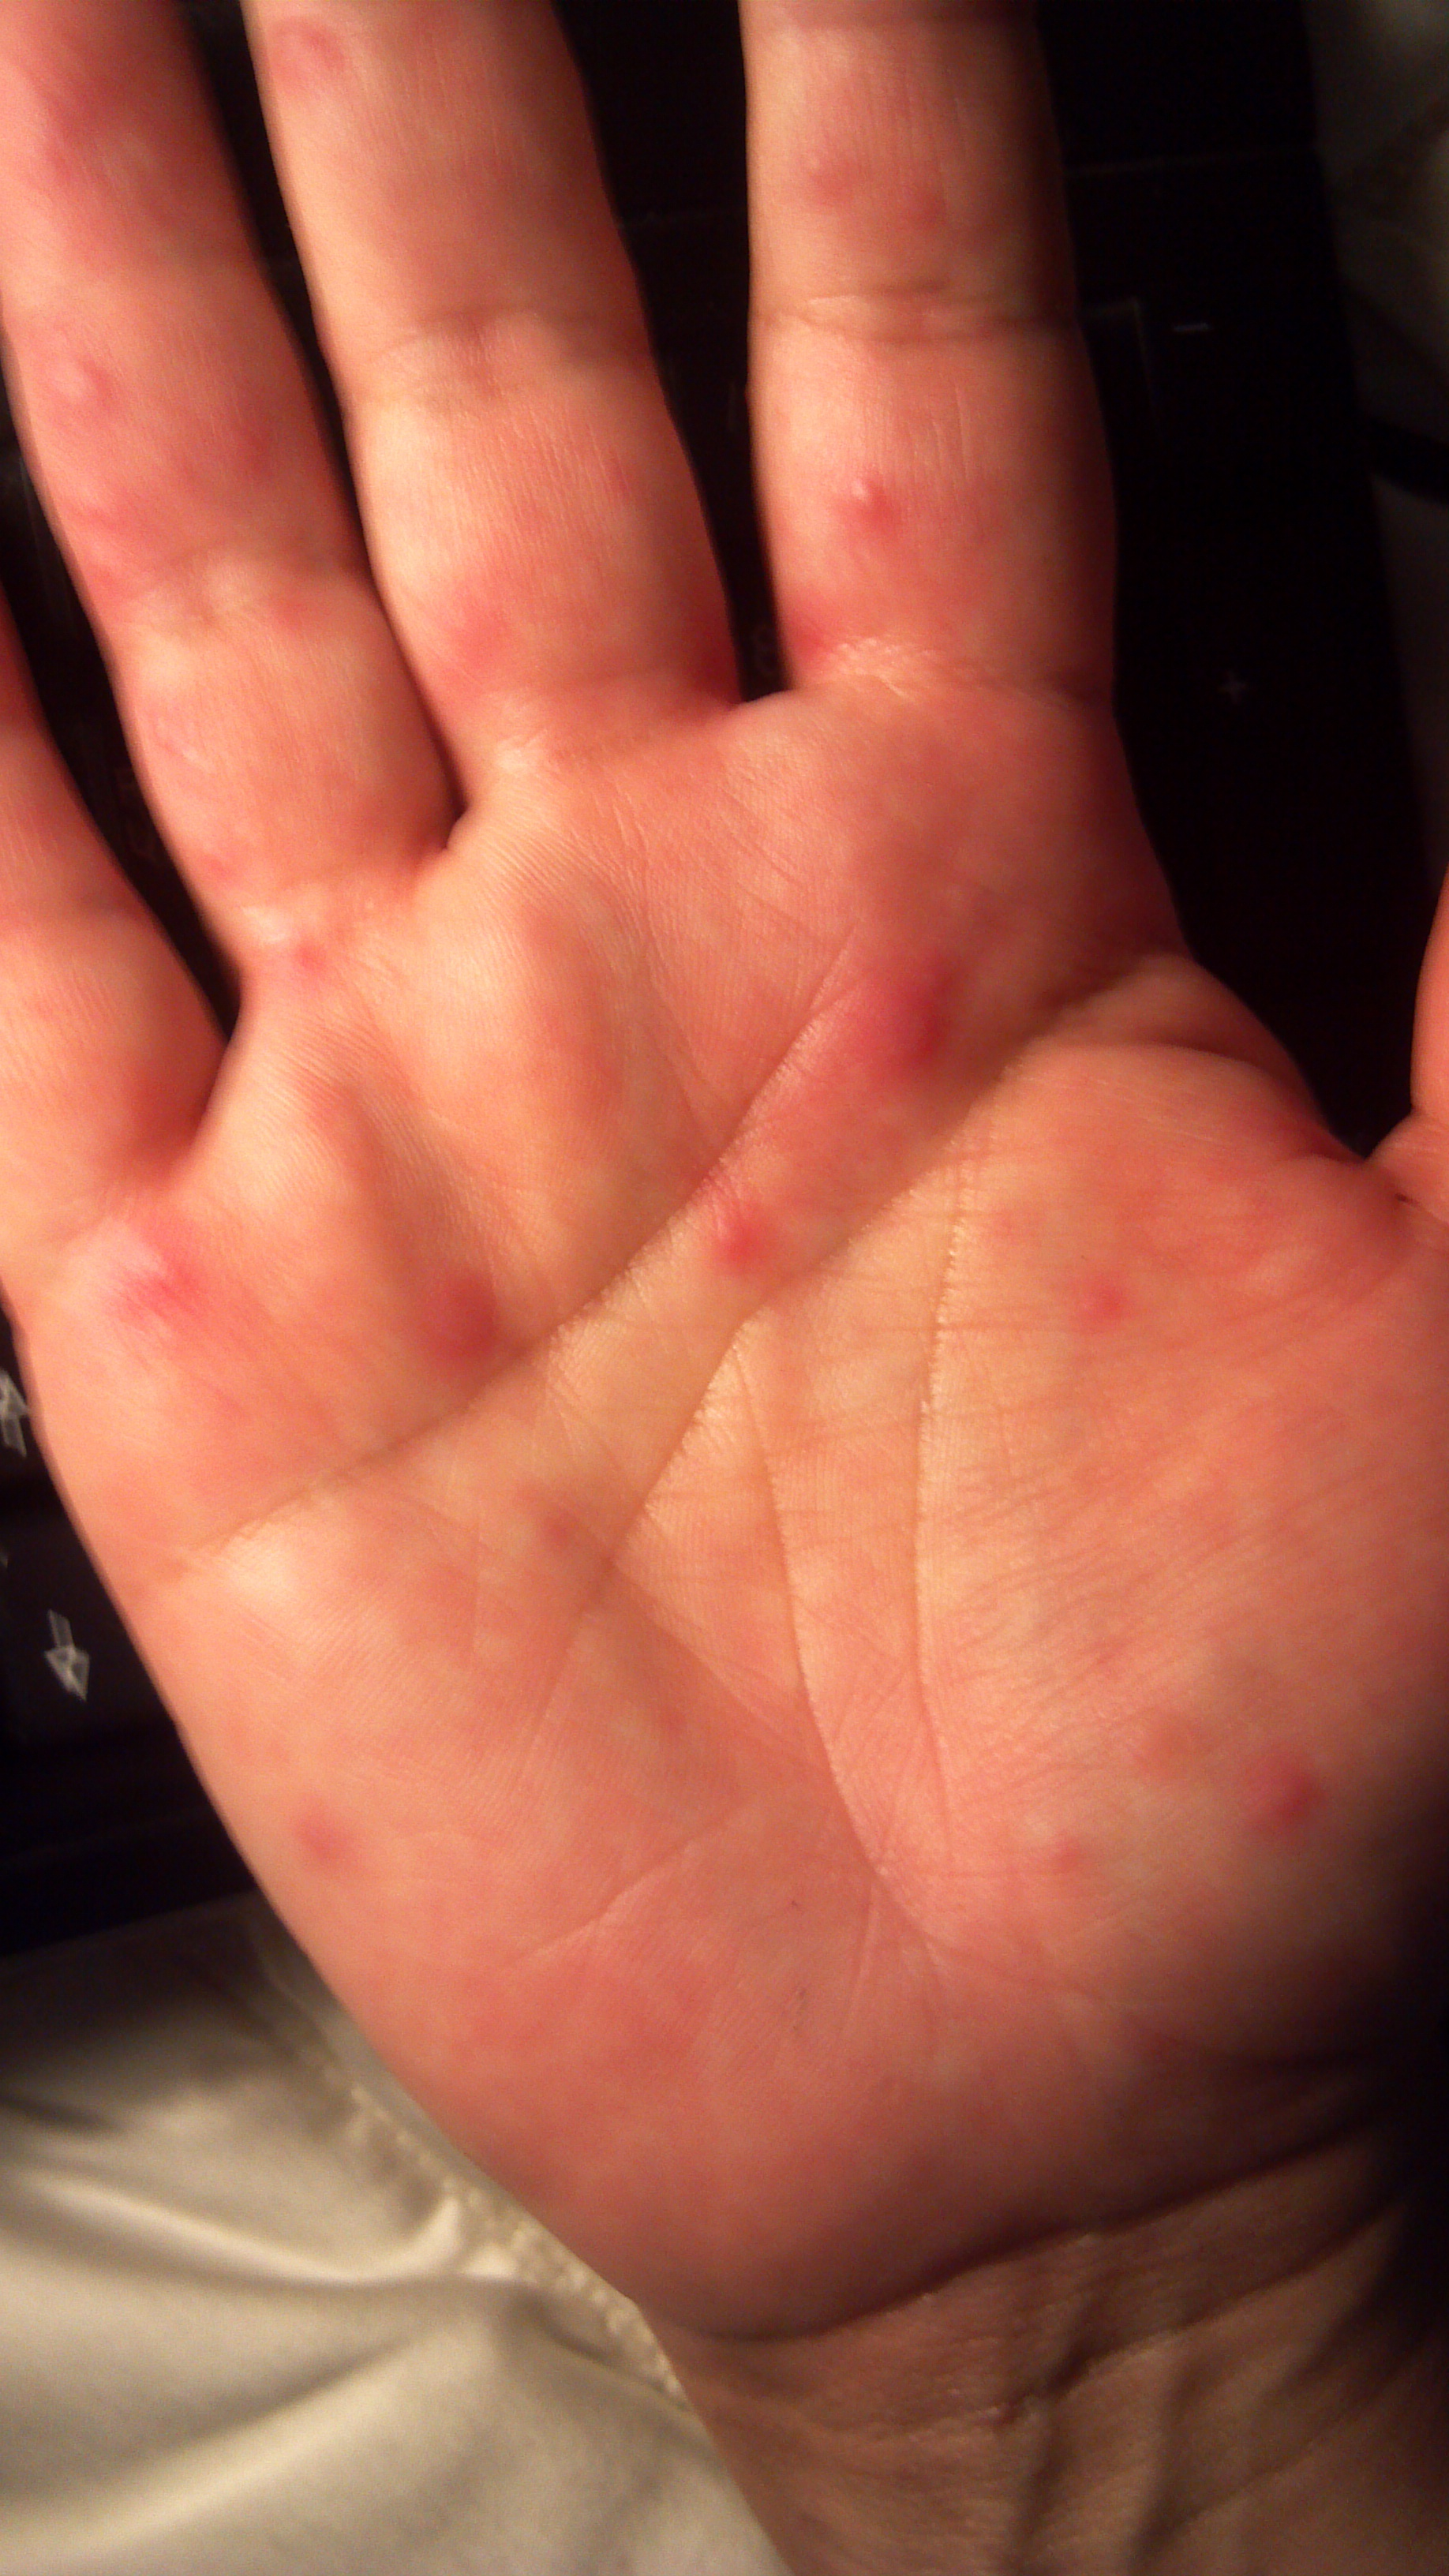 rashes in hand